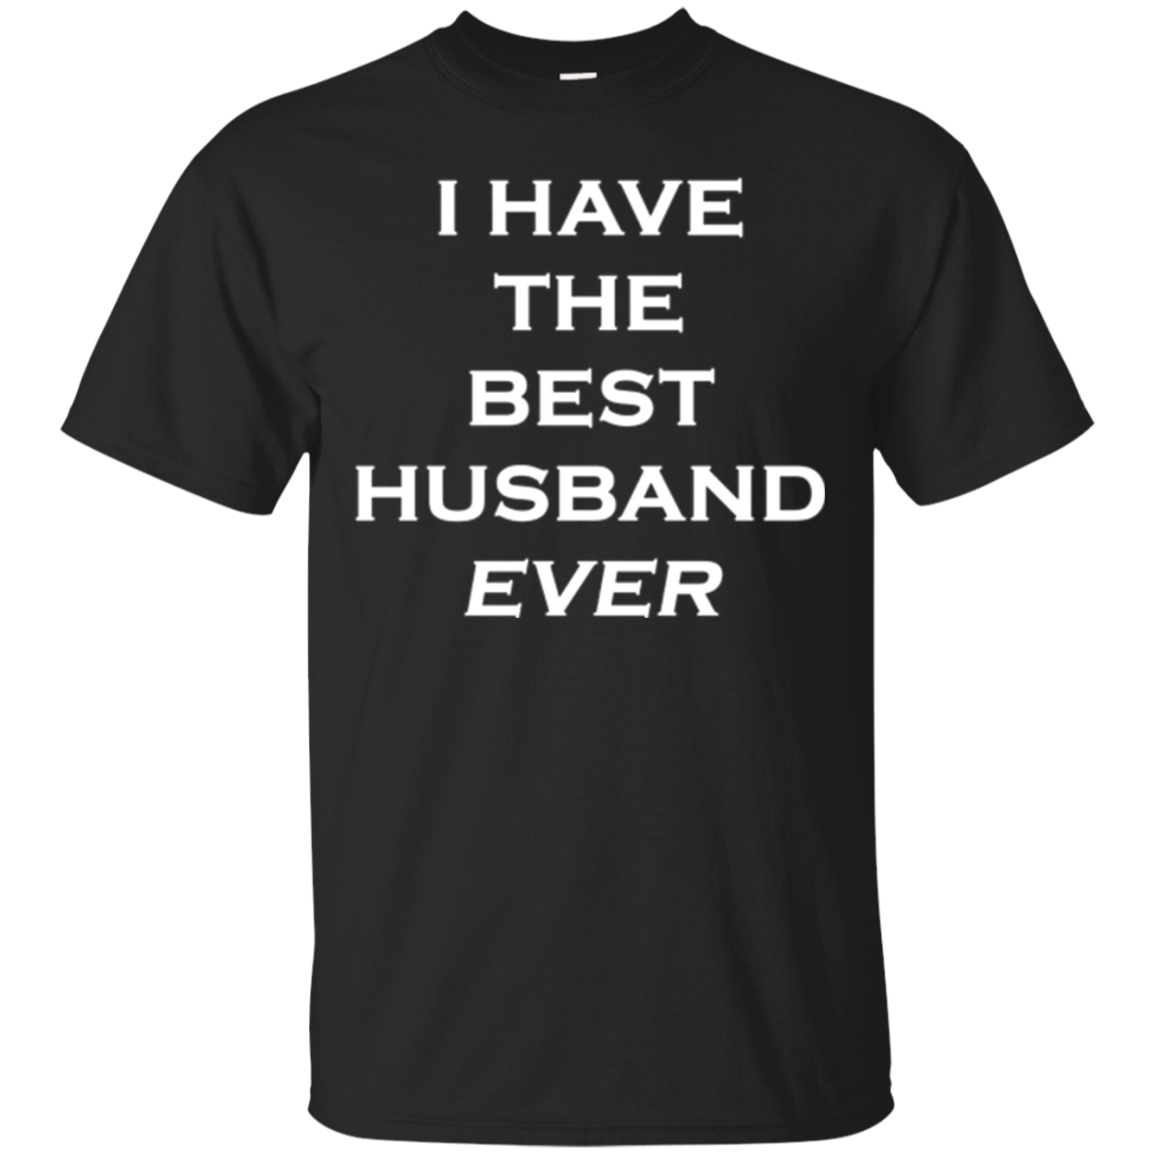 Fun Tshirt Who has The Best Husband?I HAVE THE BEST HUSBAND